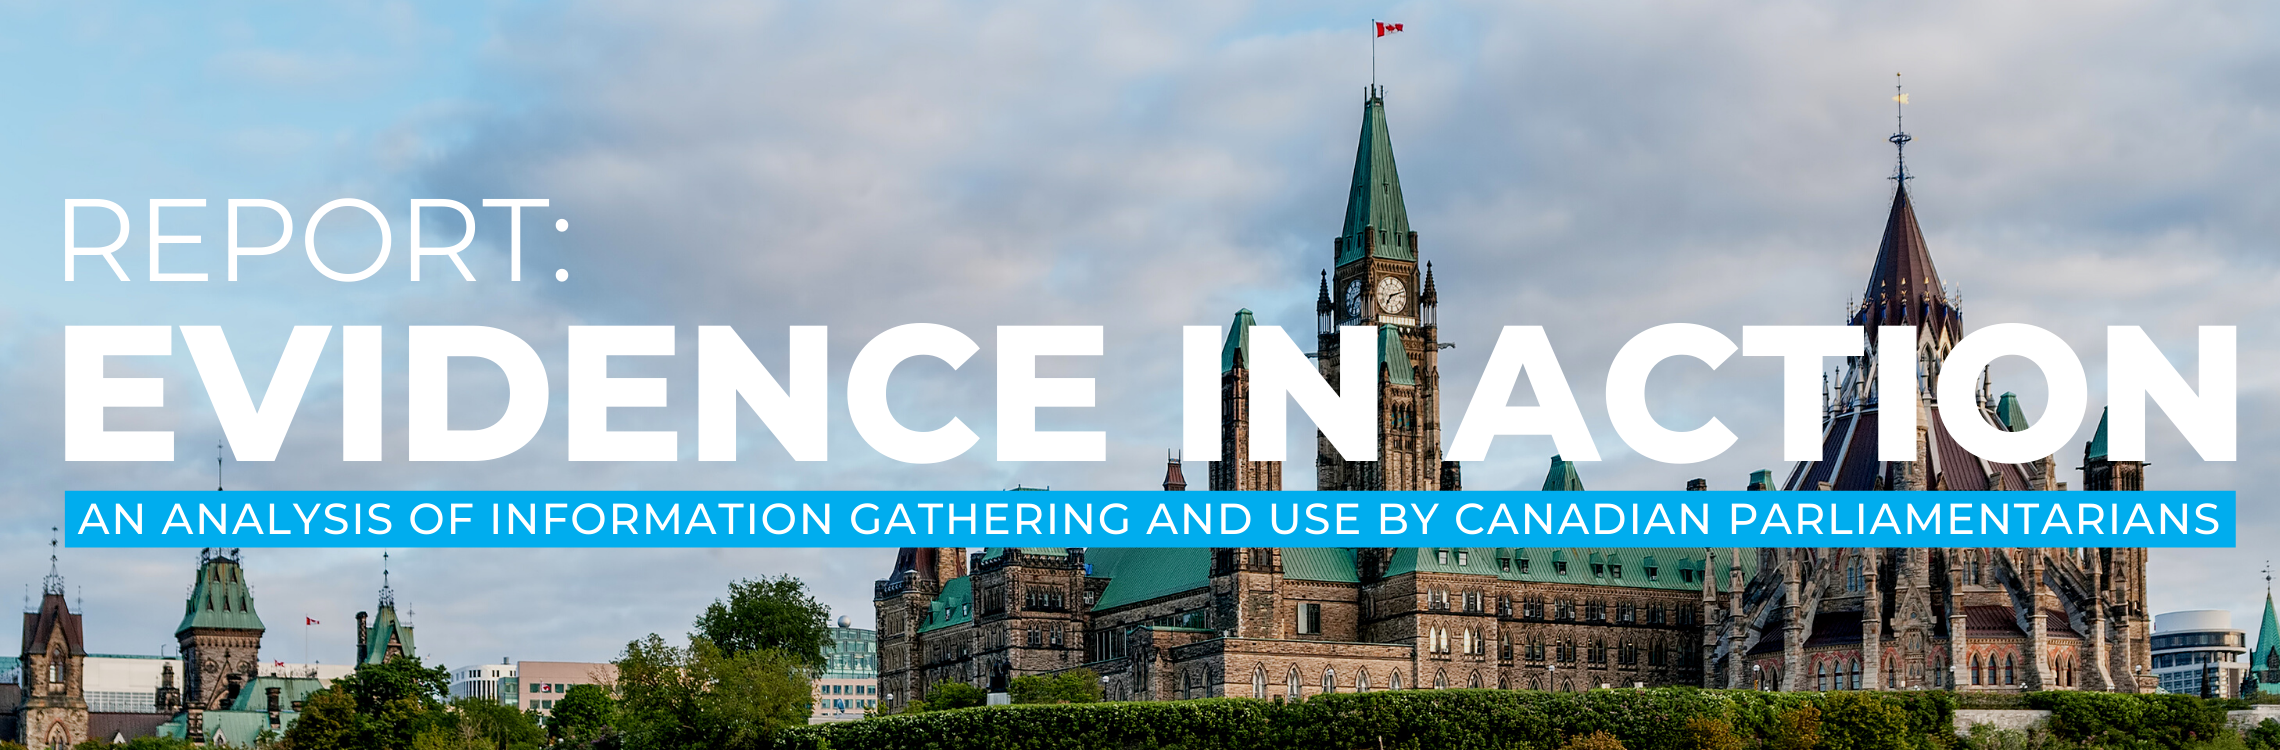 Report: Evidence in Action - An Analysis of Information Gathering and Use by Canadian Parliamentarians